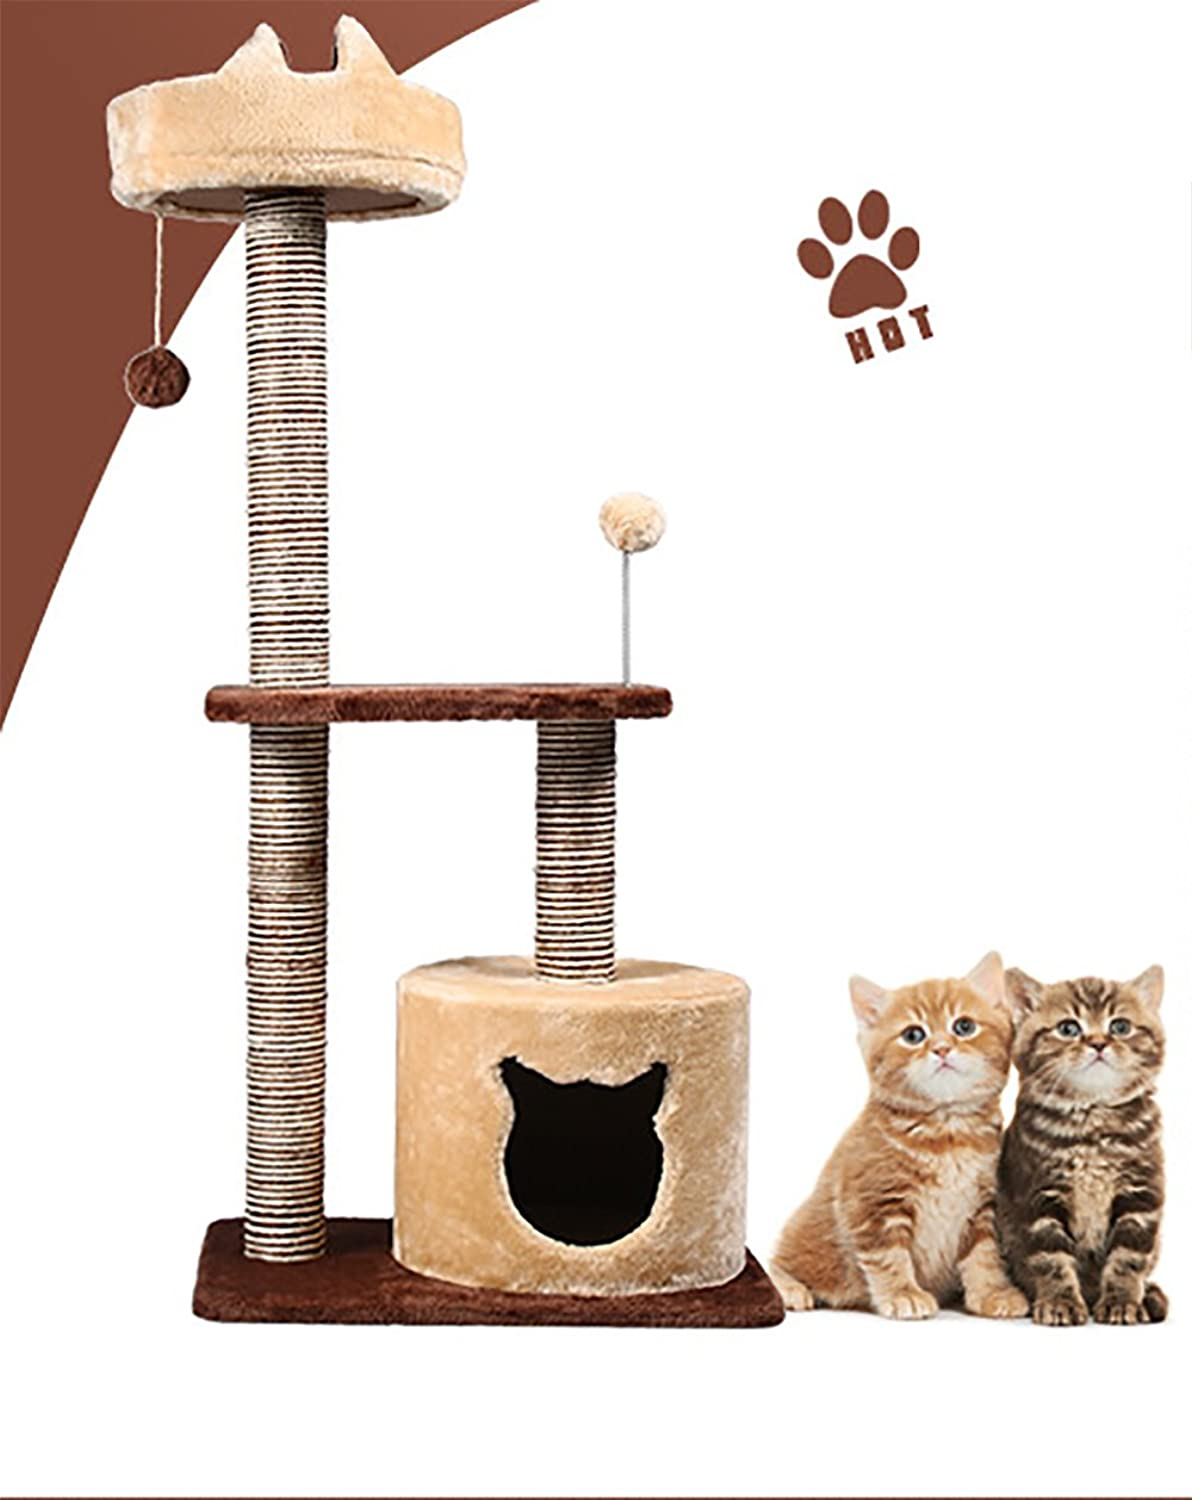 Cat Scratcher 20 14 42.8  Pet Tower Climber Adult Kitty Tree Castle Playhouse 5 Layers for Medium Adult Cats